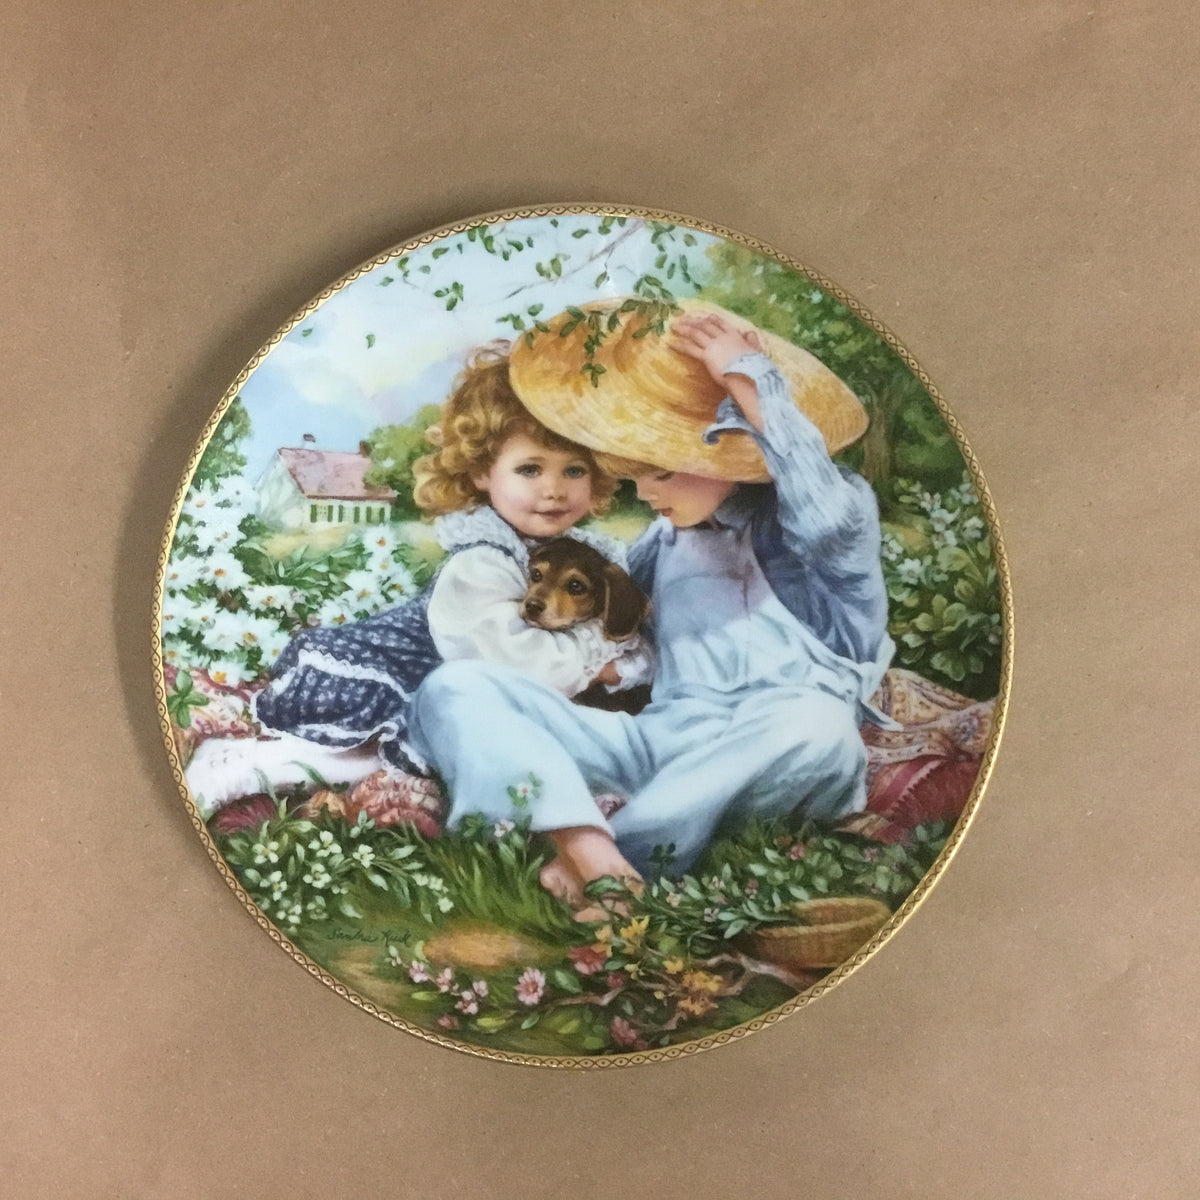 "Vintage Collectors Plate ""A Time To Love"" by Sandra Kuck 1989 Plate No 4190 B Bradex No 84-M89-1.2"